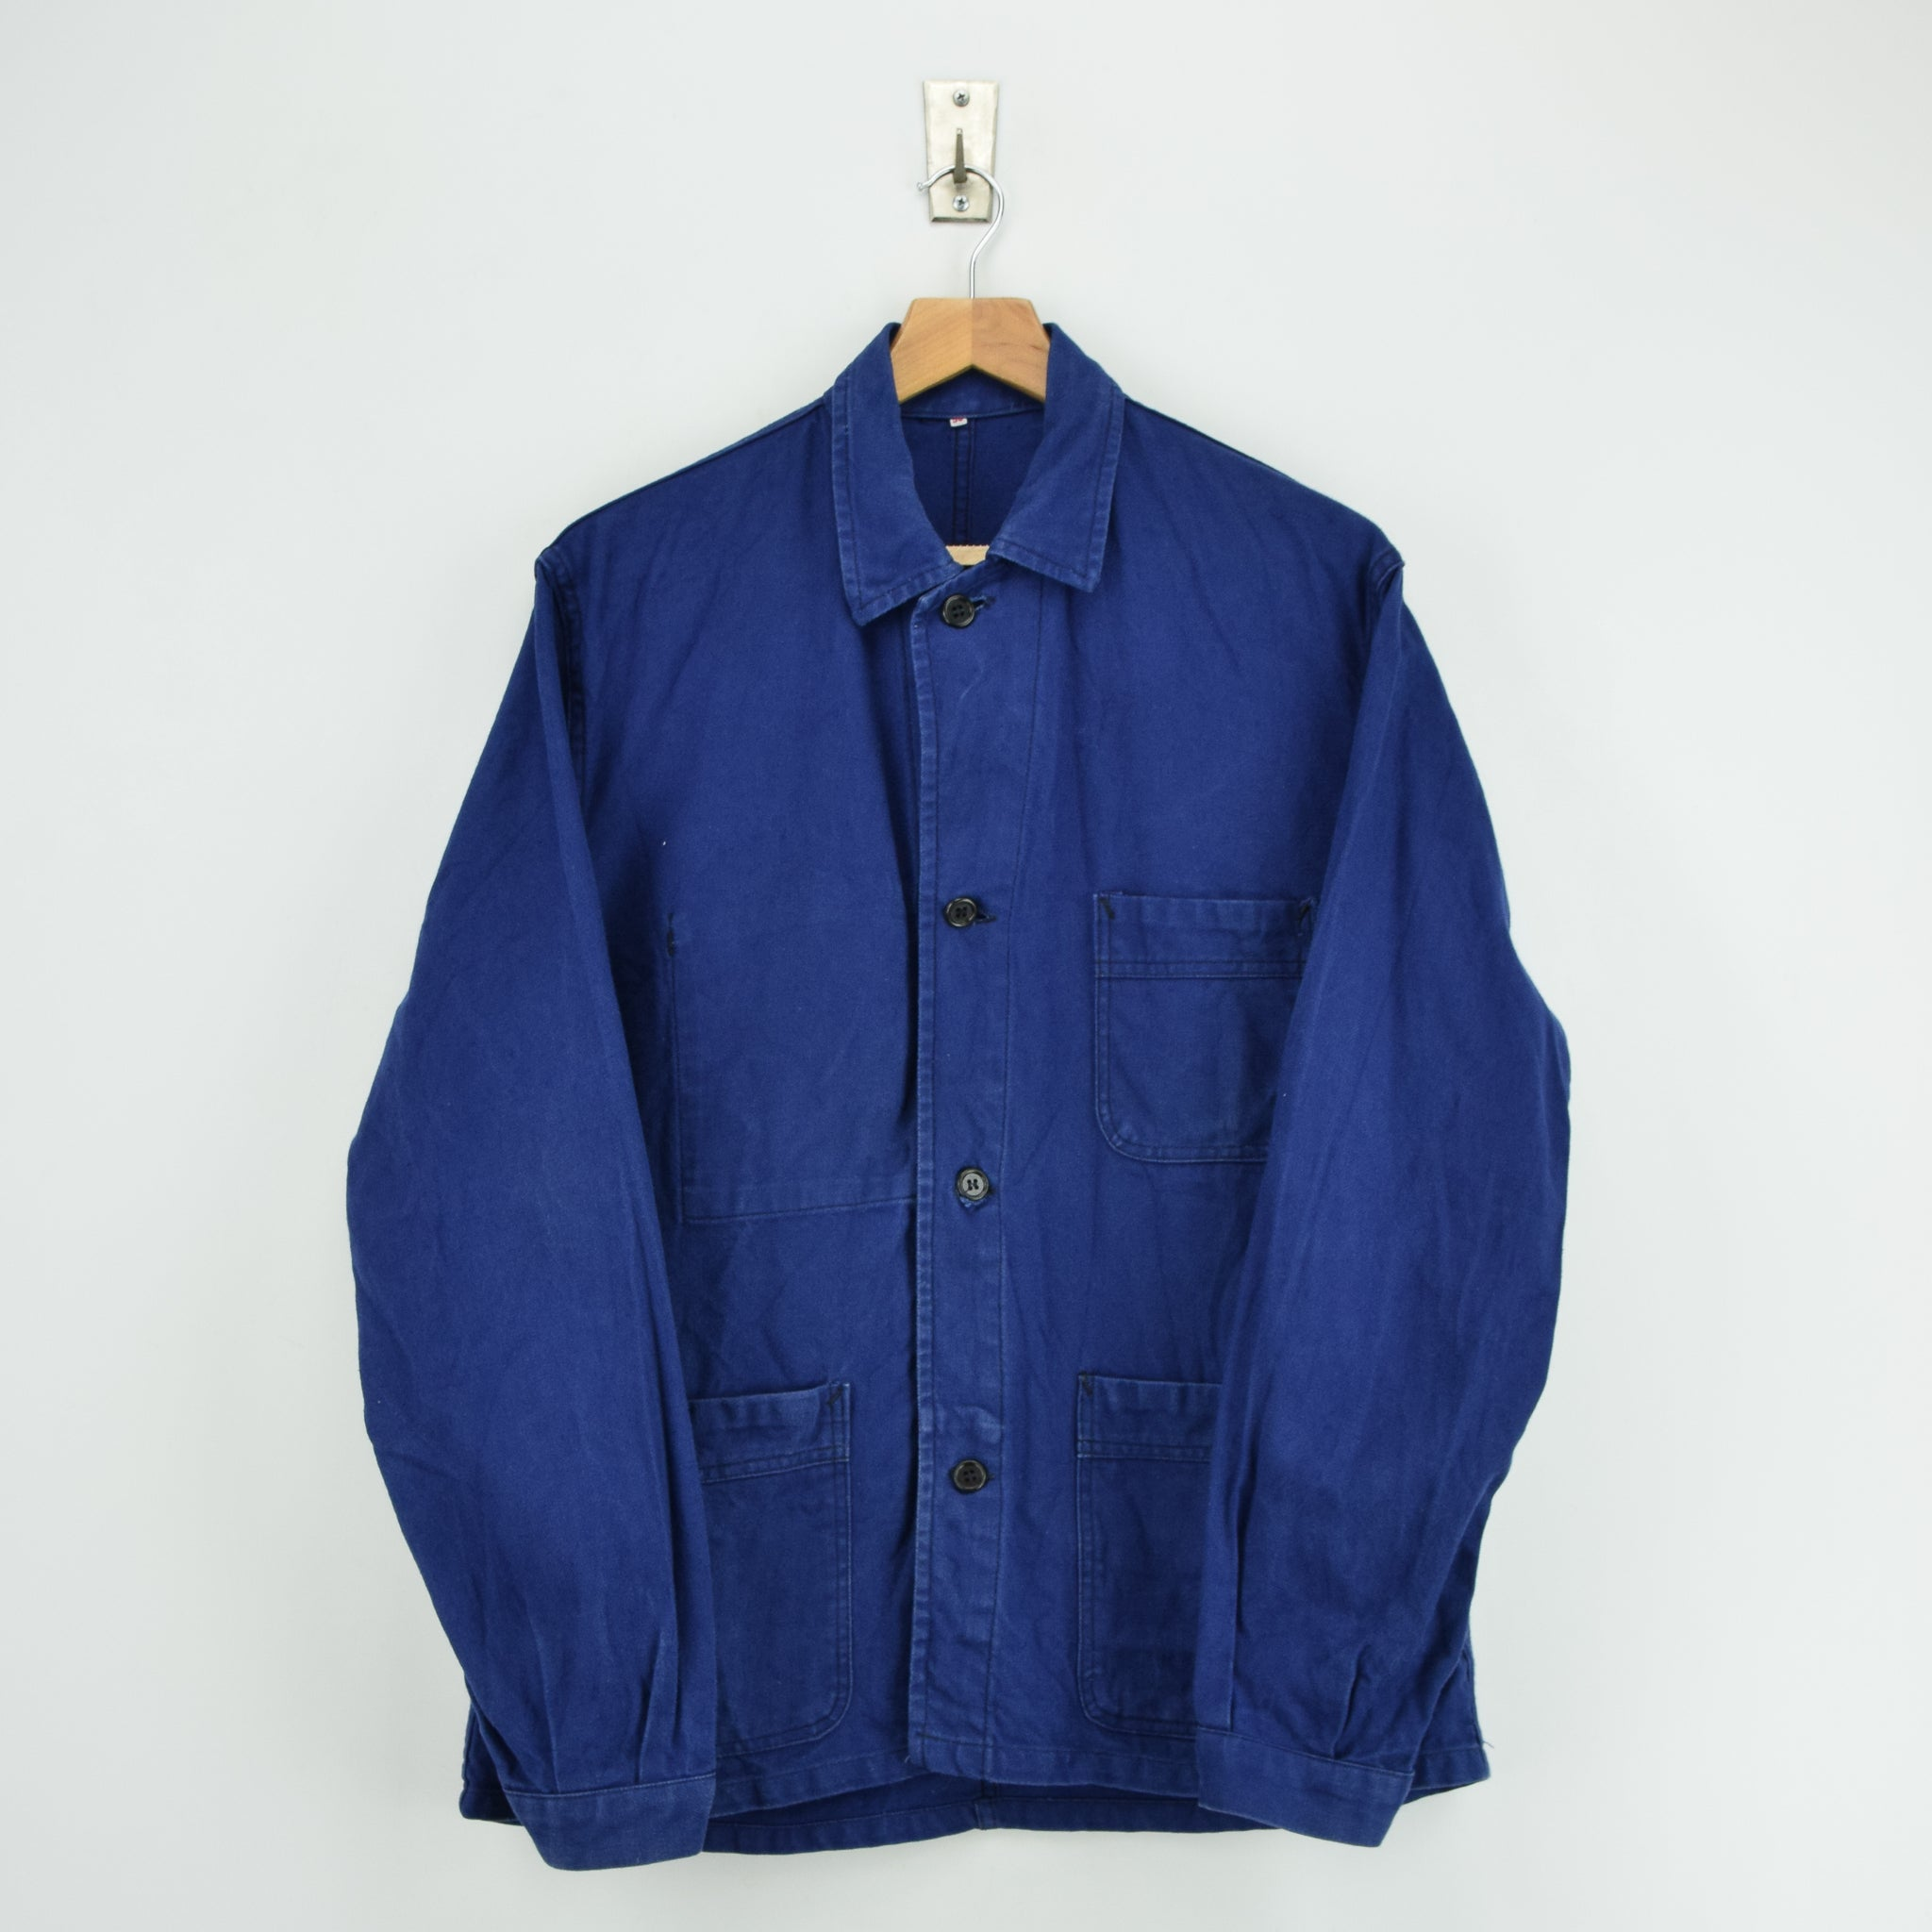 Vintage Indigo Blue French Worker Sanforized Cotton Chore Jacket M front